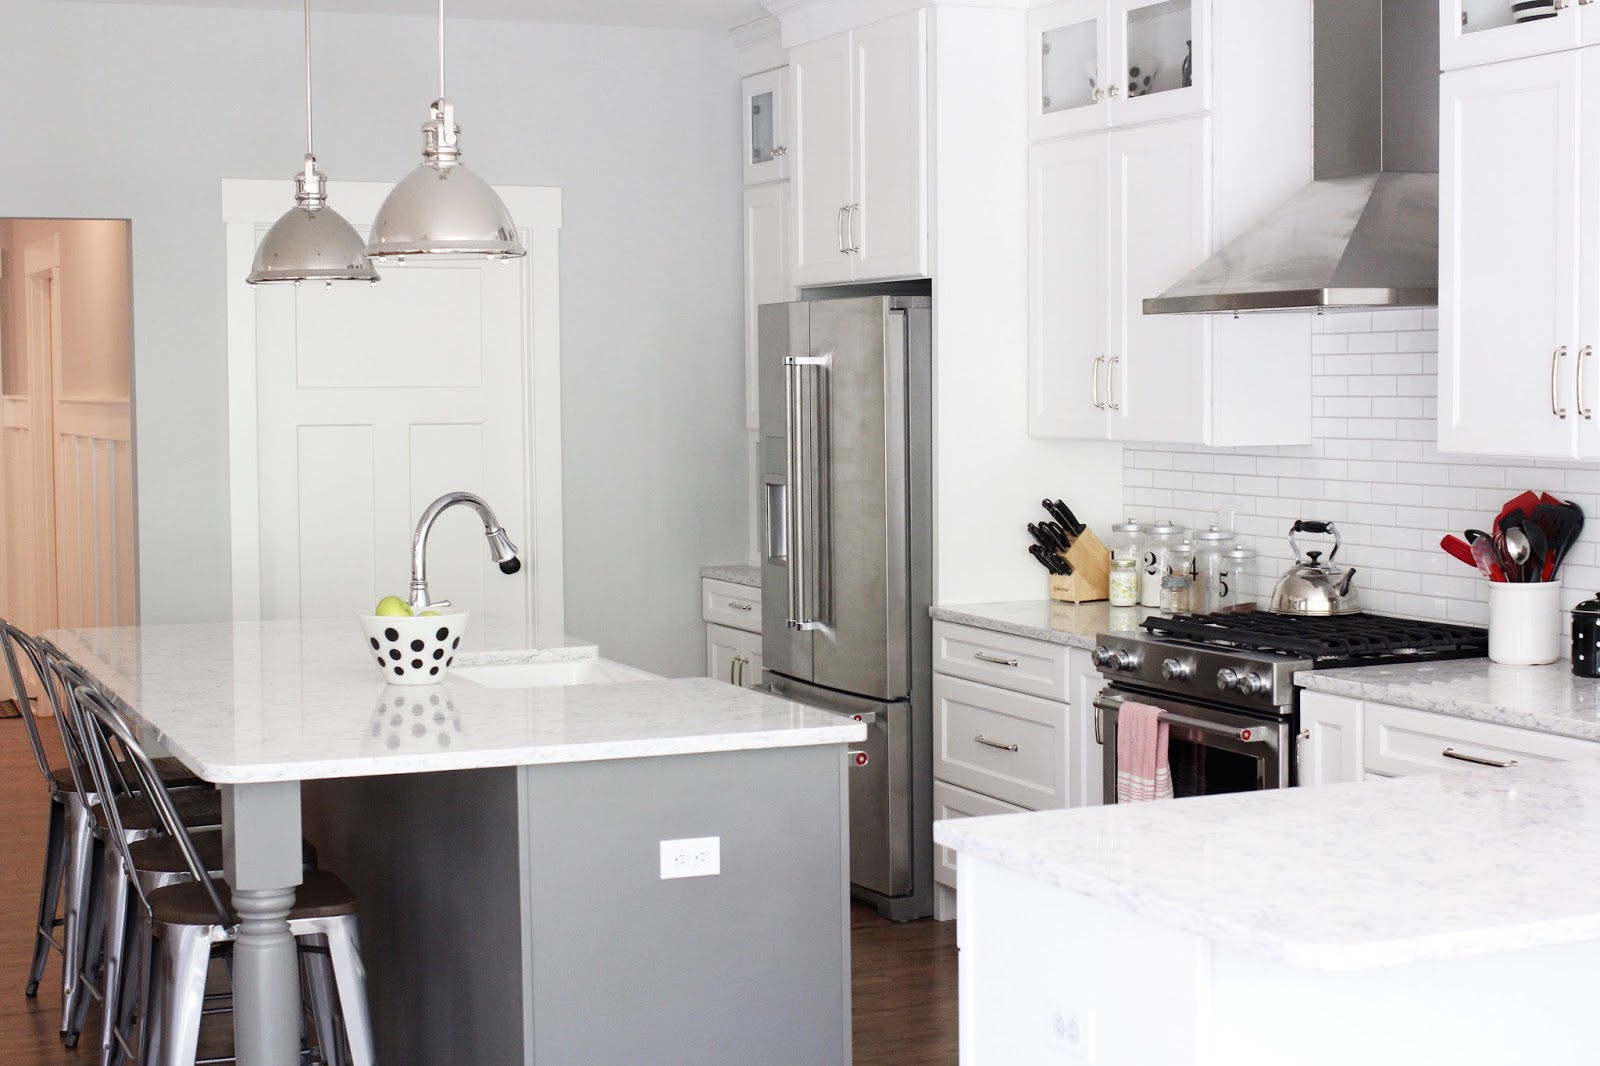 Home Tour: Kitchen · The Girl in the Red Shoes